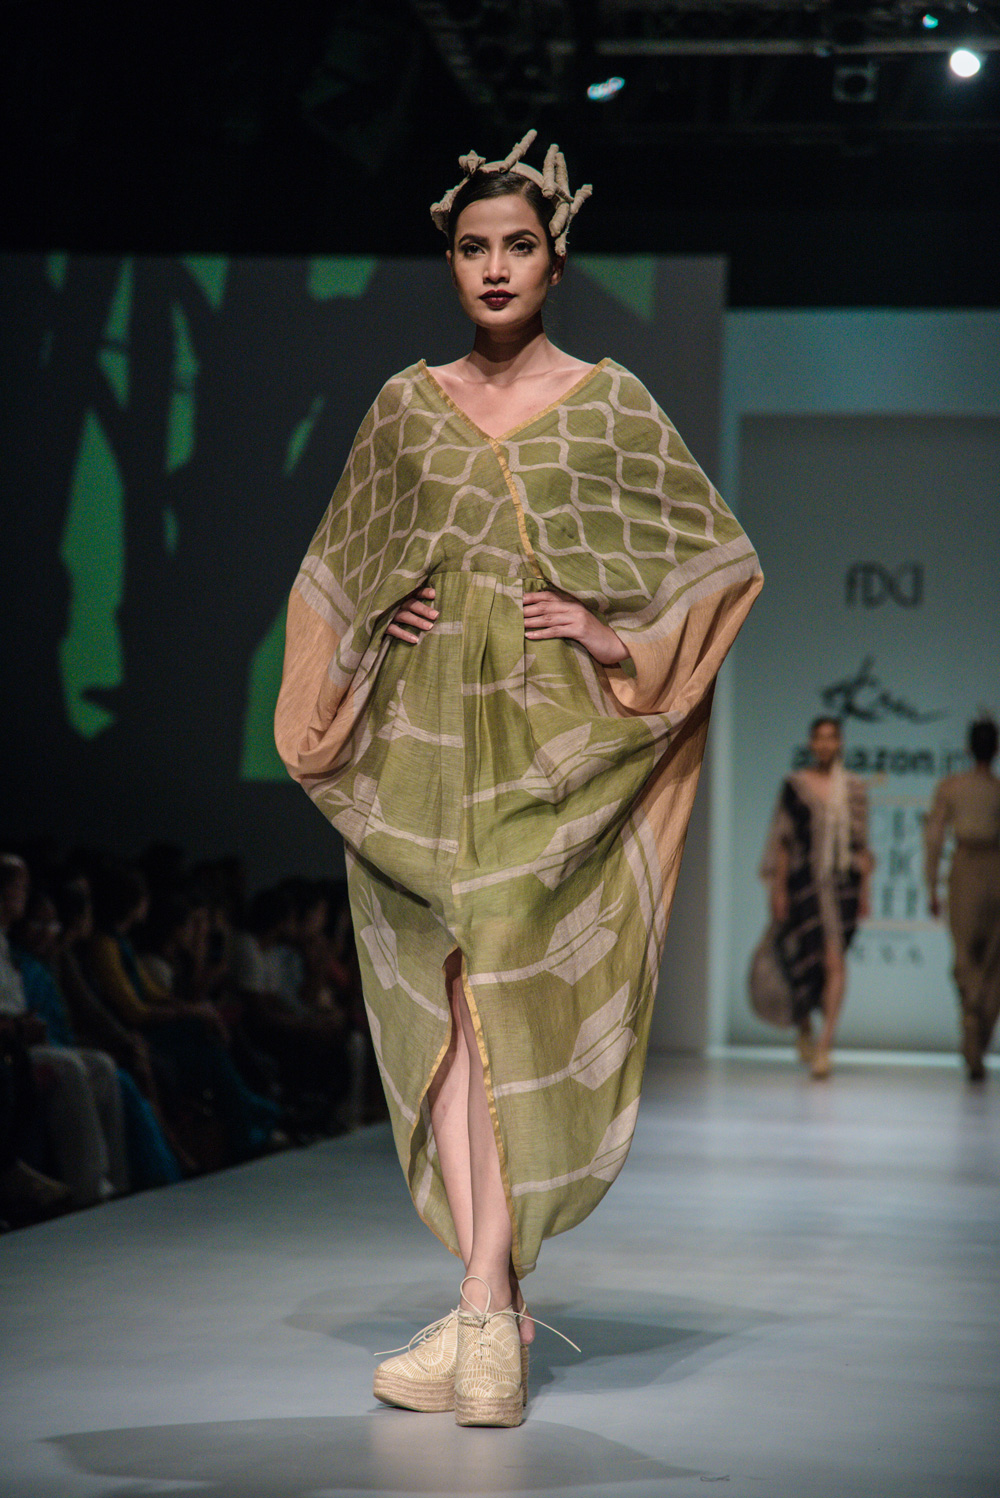 Ekru by Ektaa FDCI Amazon India Fashion Week Spring Summer 2018 Look 11